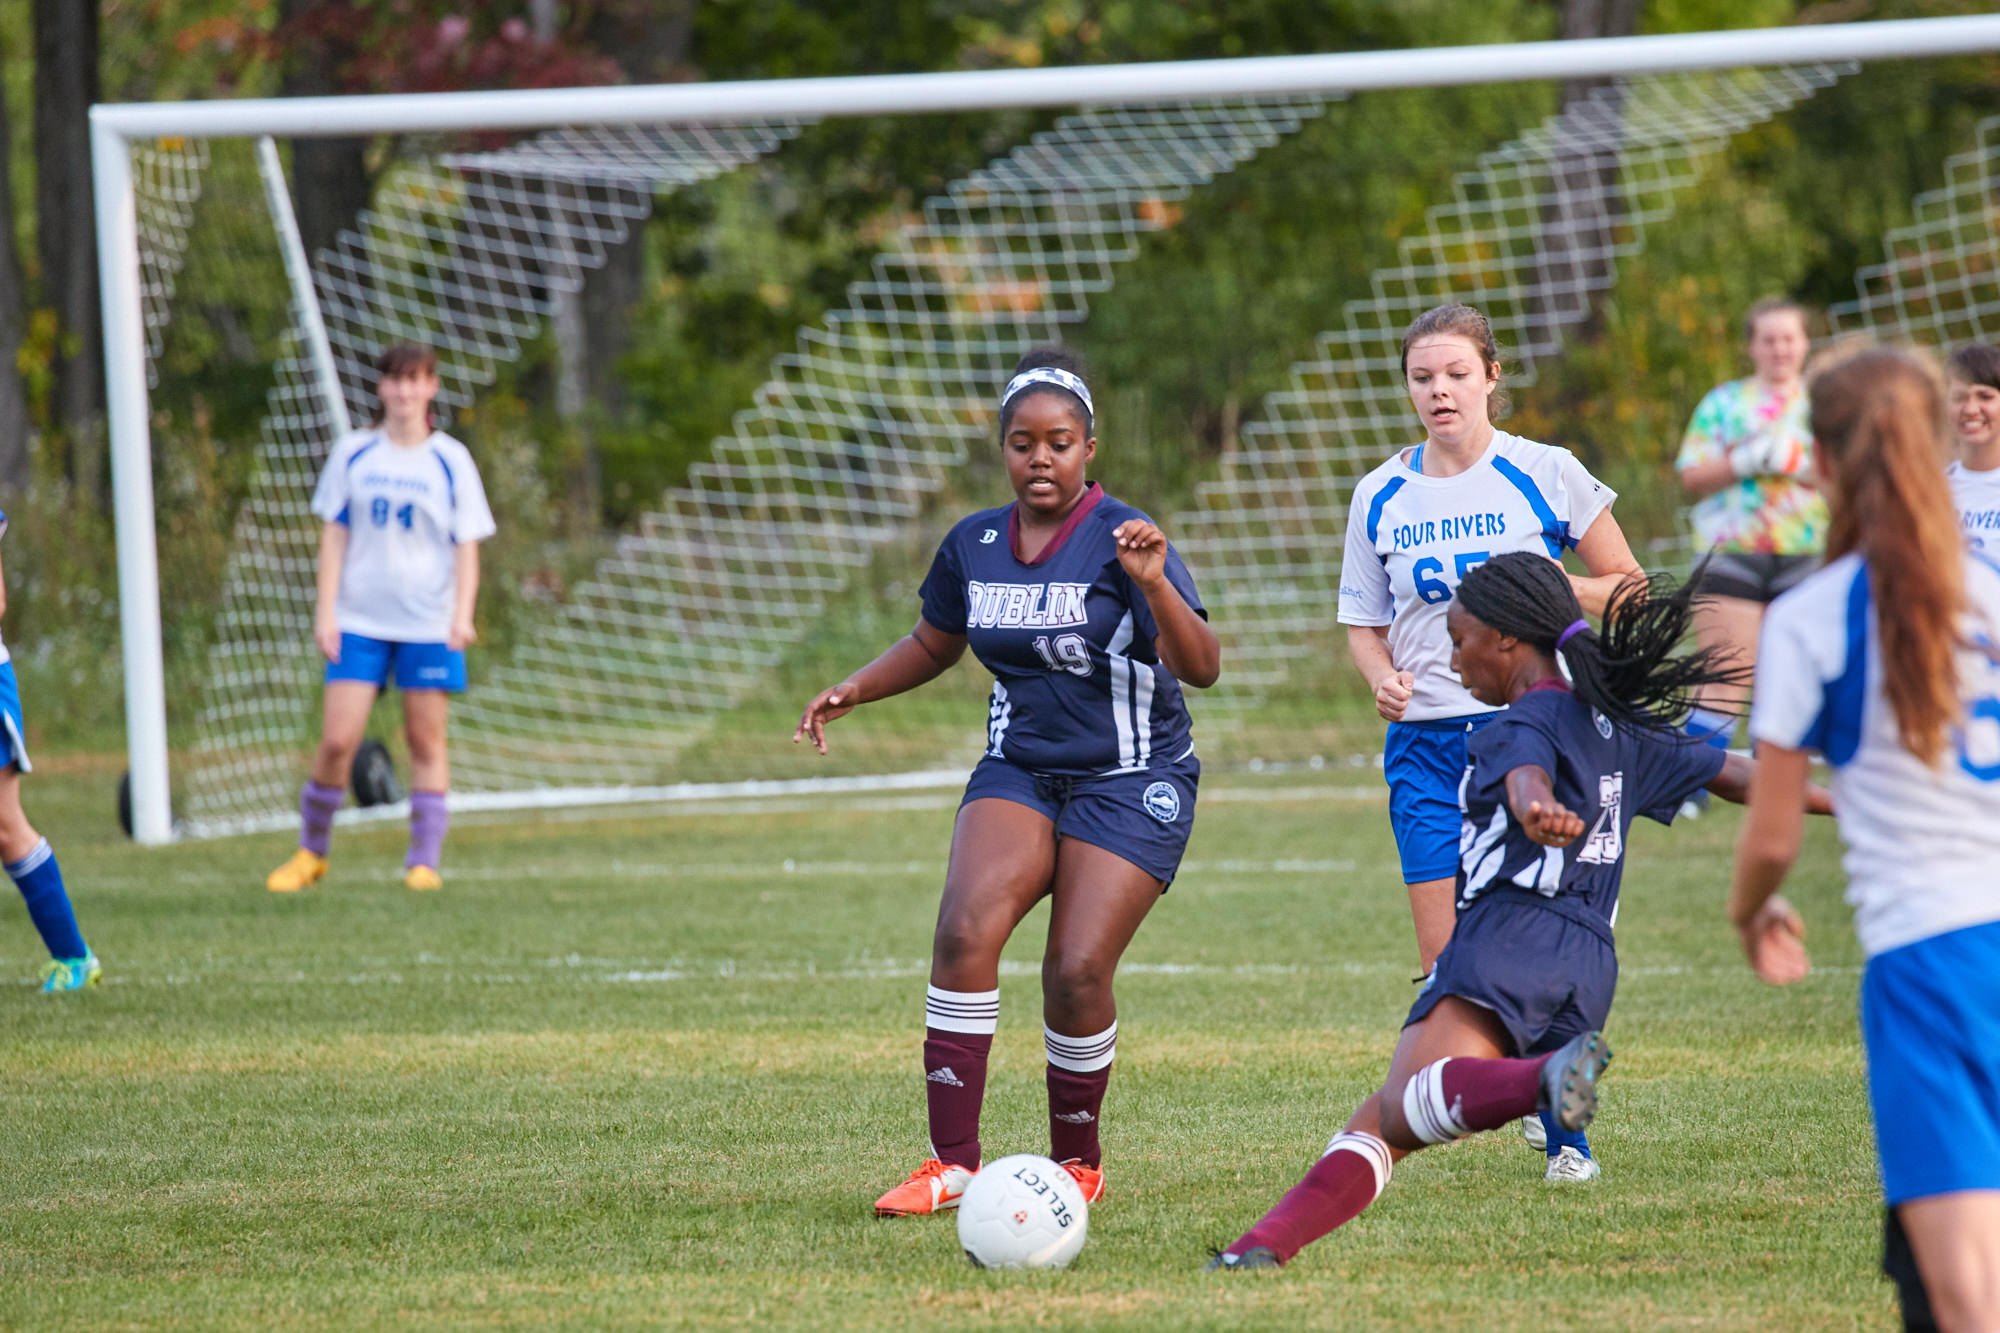 Girls Varsity Soccer vs. Four Rivers Charter Public School - September 23, 2016 - 41844- 000158.jpg